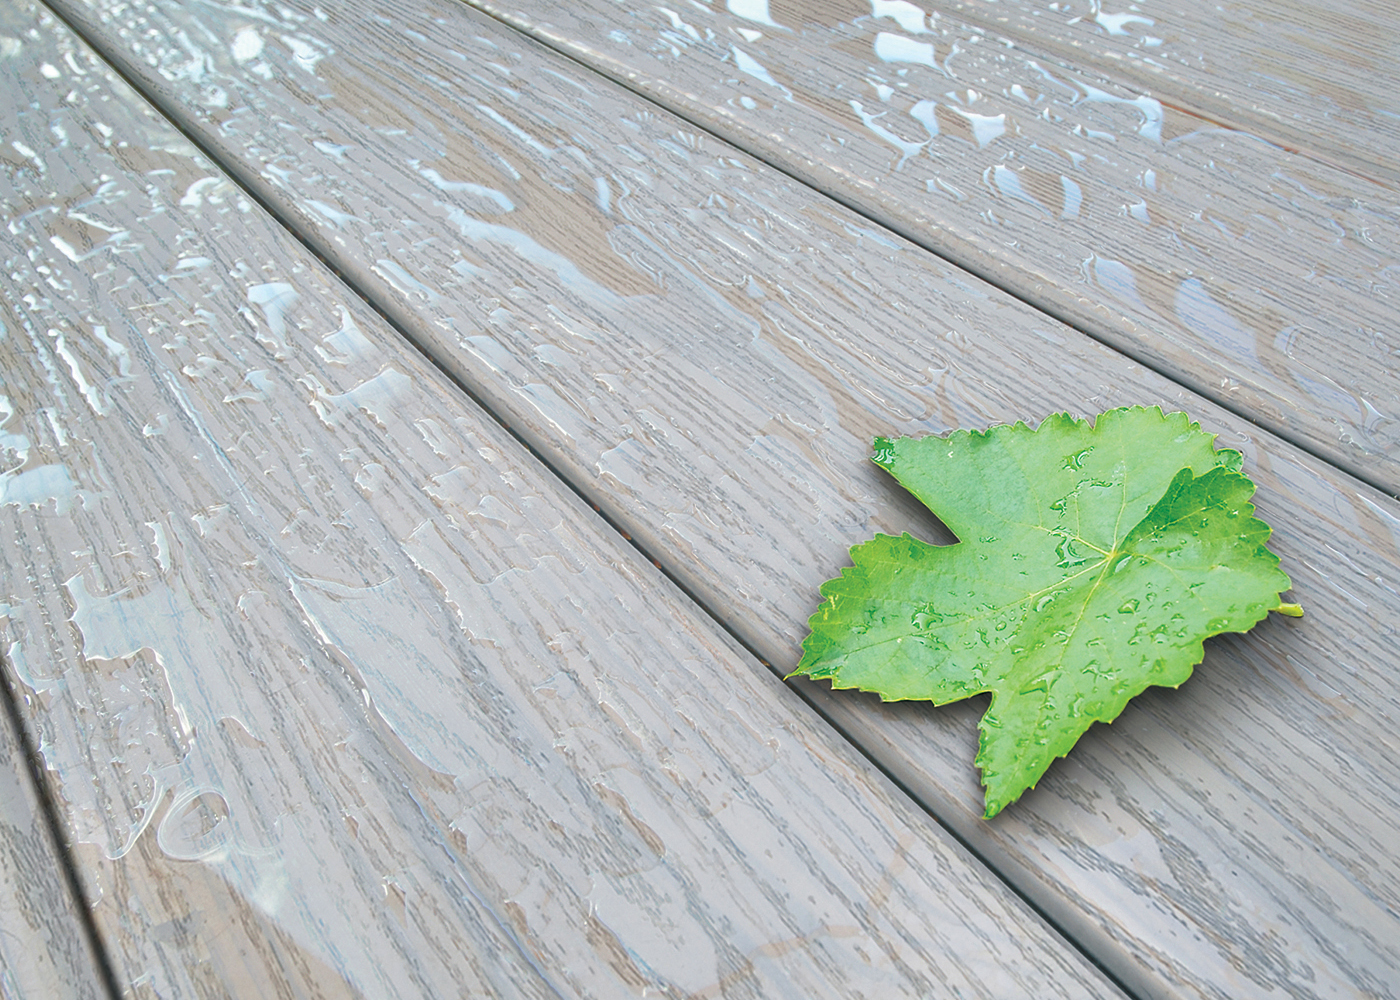 Ashwood-Deck-with-Leaf-and-Water